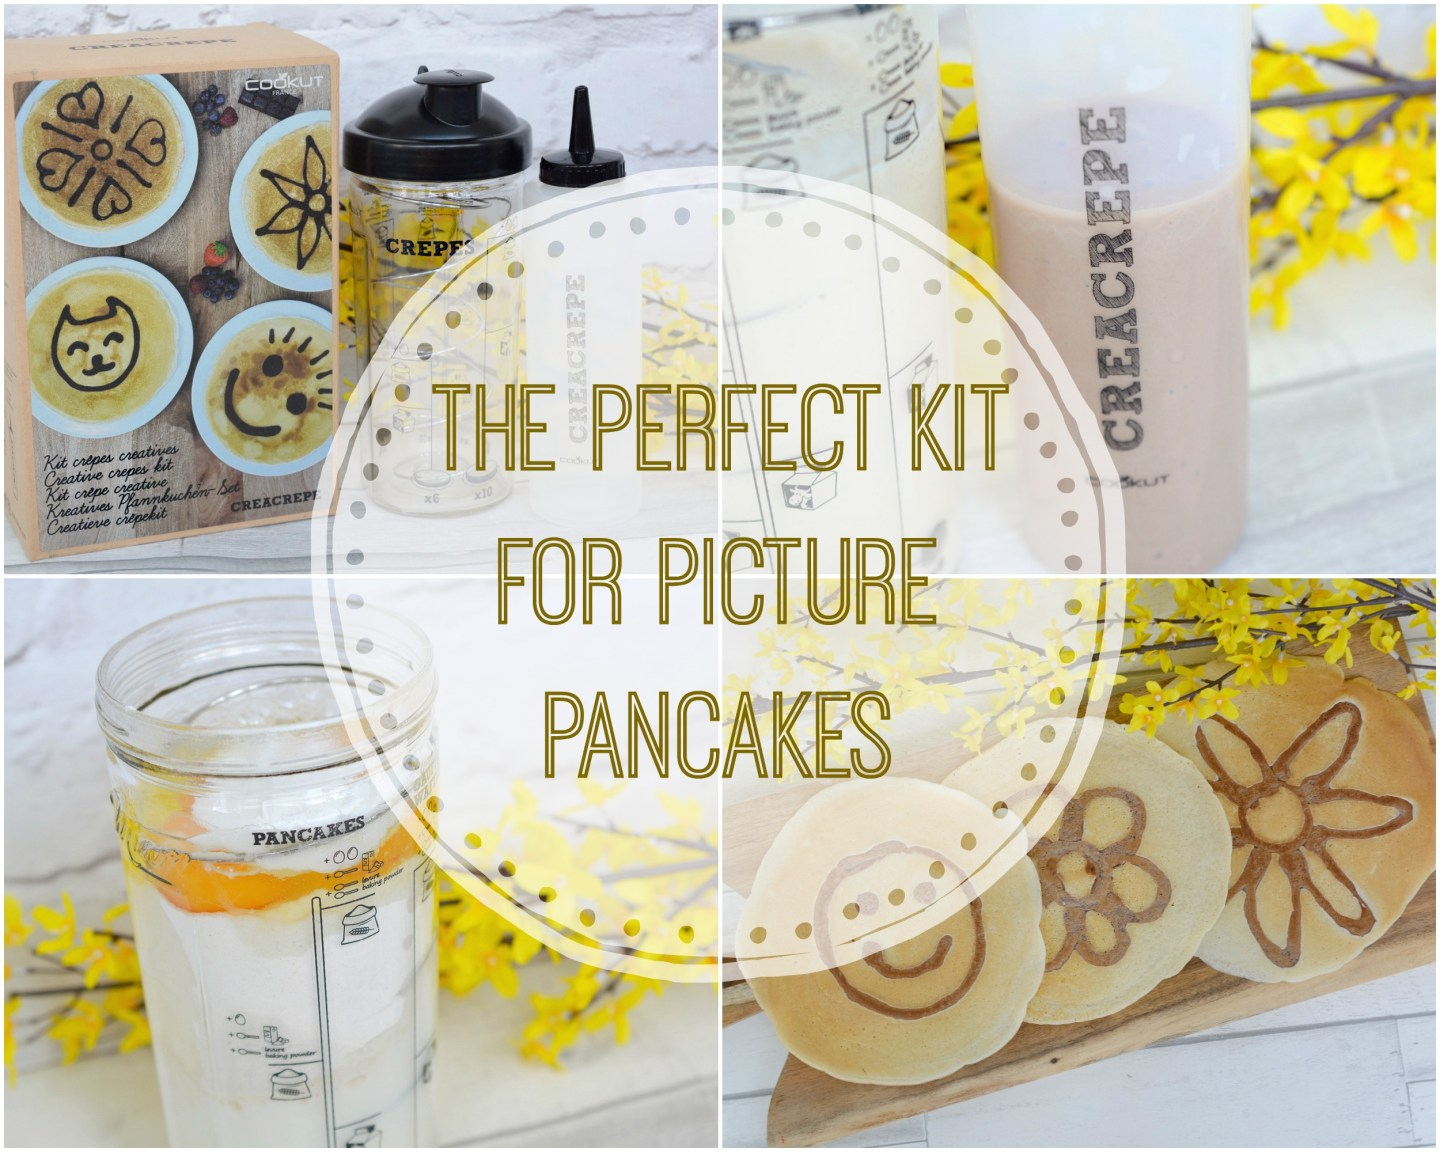 The Perfect Kit for Picture Pancakes | Creacrepe - Creative Crepe Kit | Vintage Frills